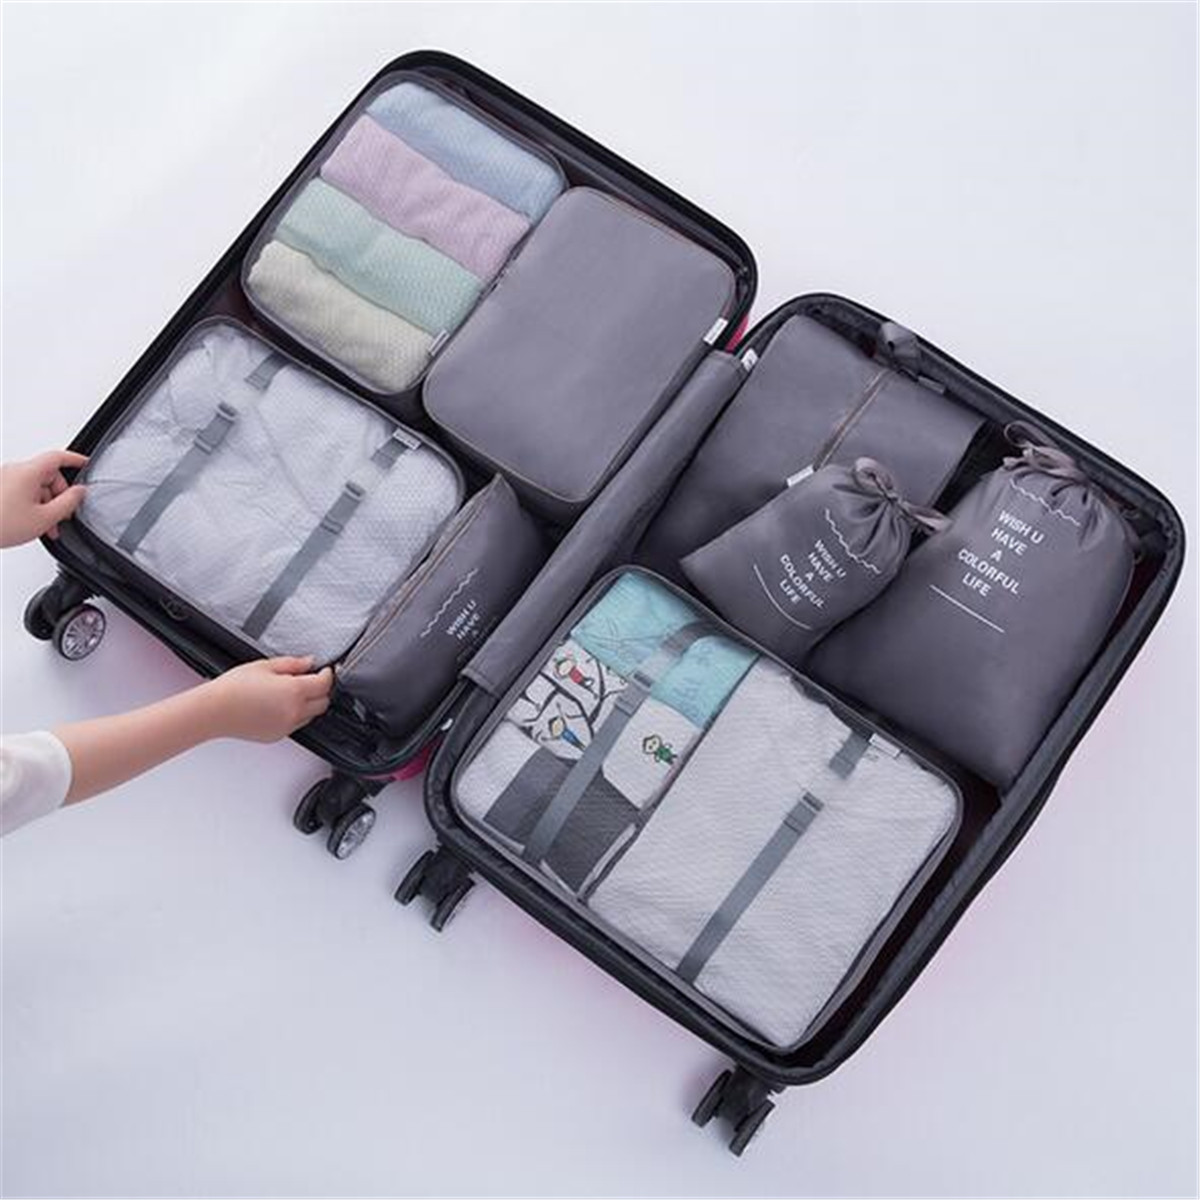 8PCS Travel Luggage Organizer Set Storage Pouches Suitcase Packing Bags